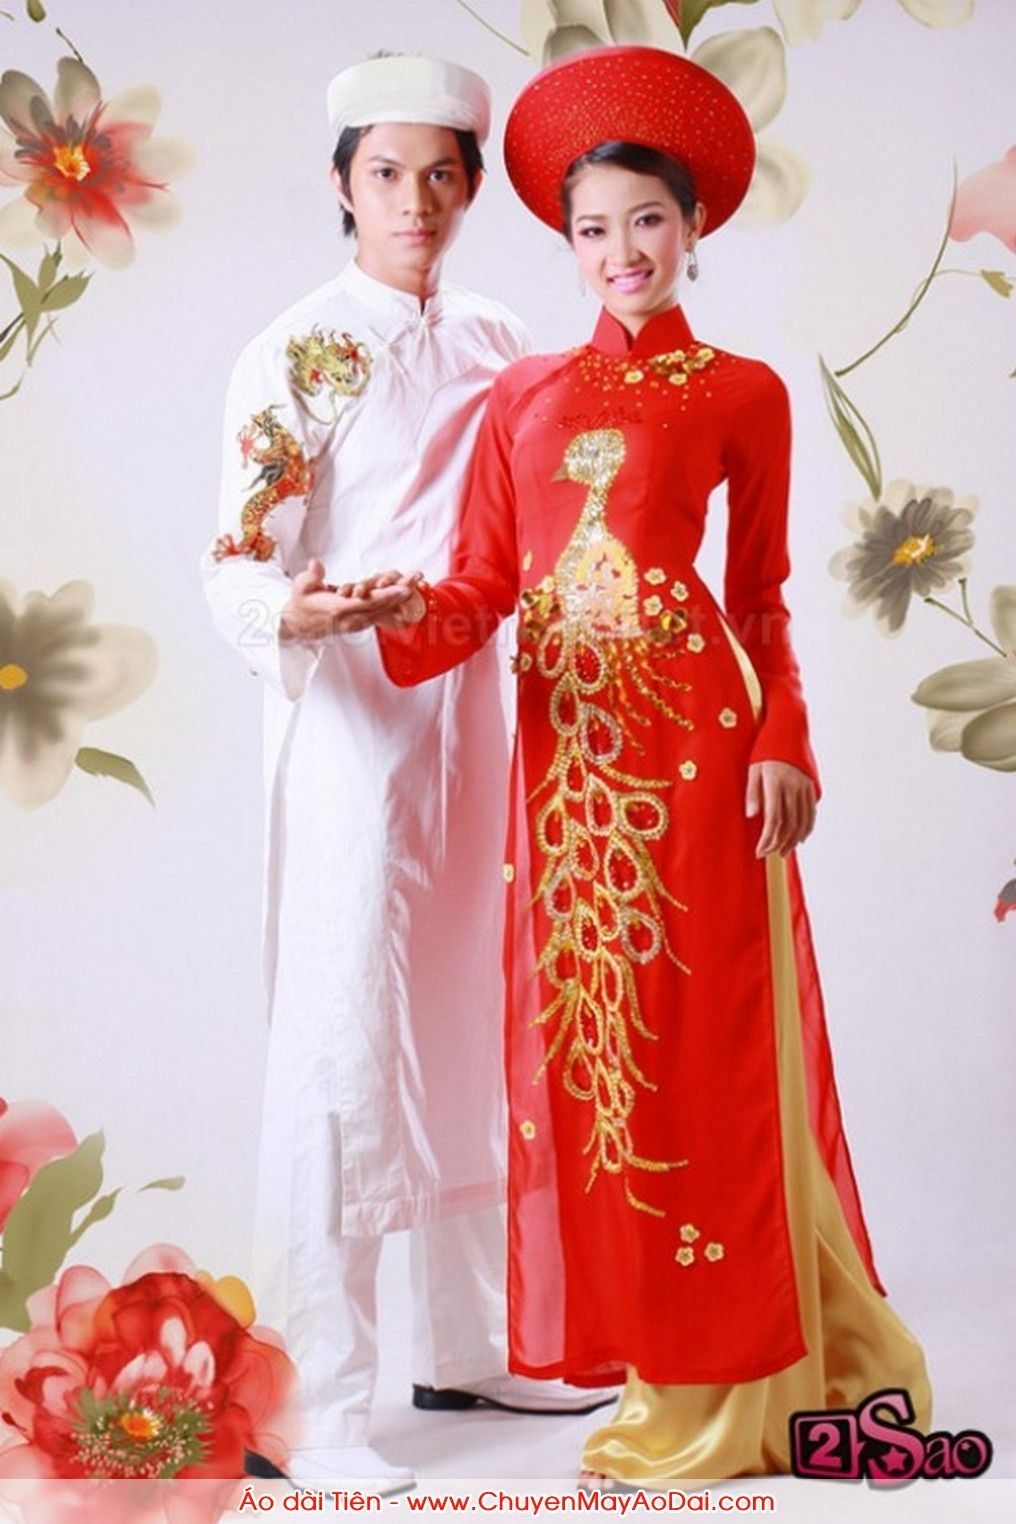 Ao dai, red traditional vietnamese wedding dress | Wedding Ideas ...